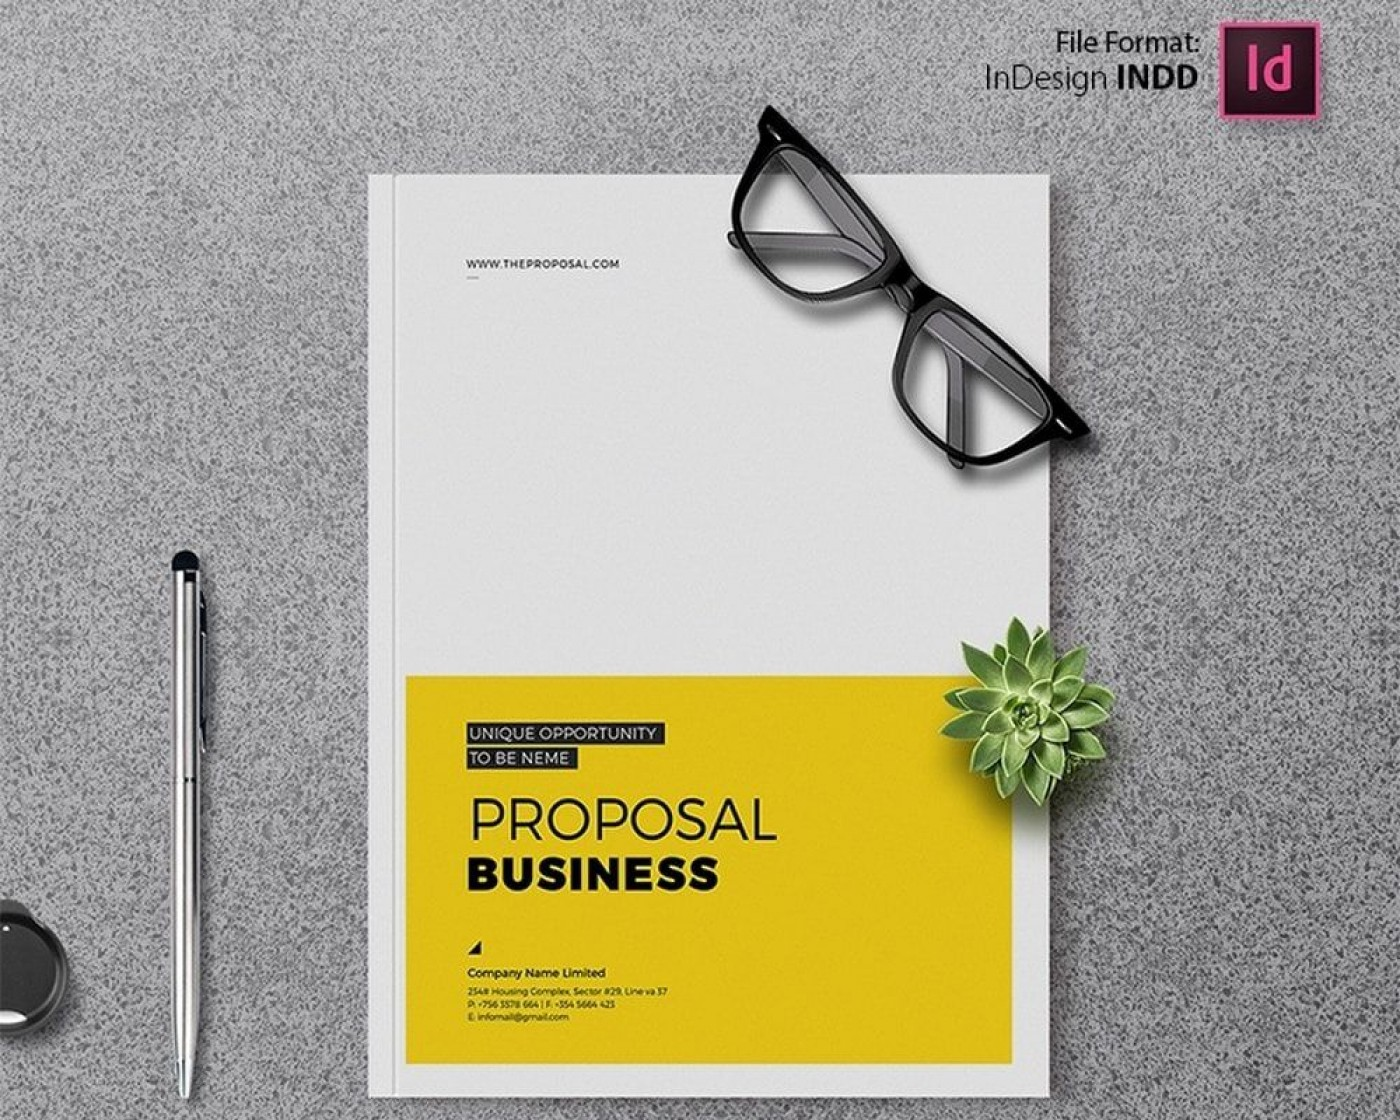 006 Fearsome Photoshop Brochure Design Template Free Download High Resolution 1400